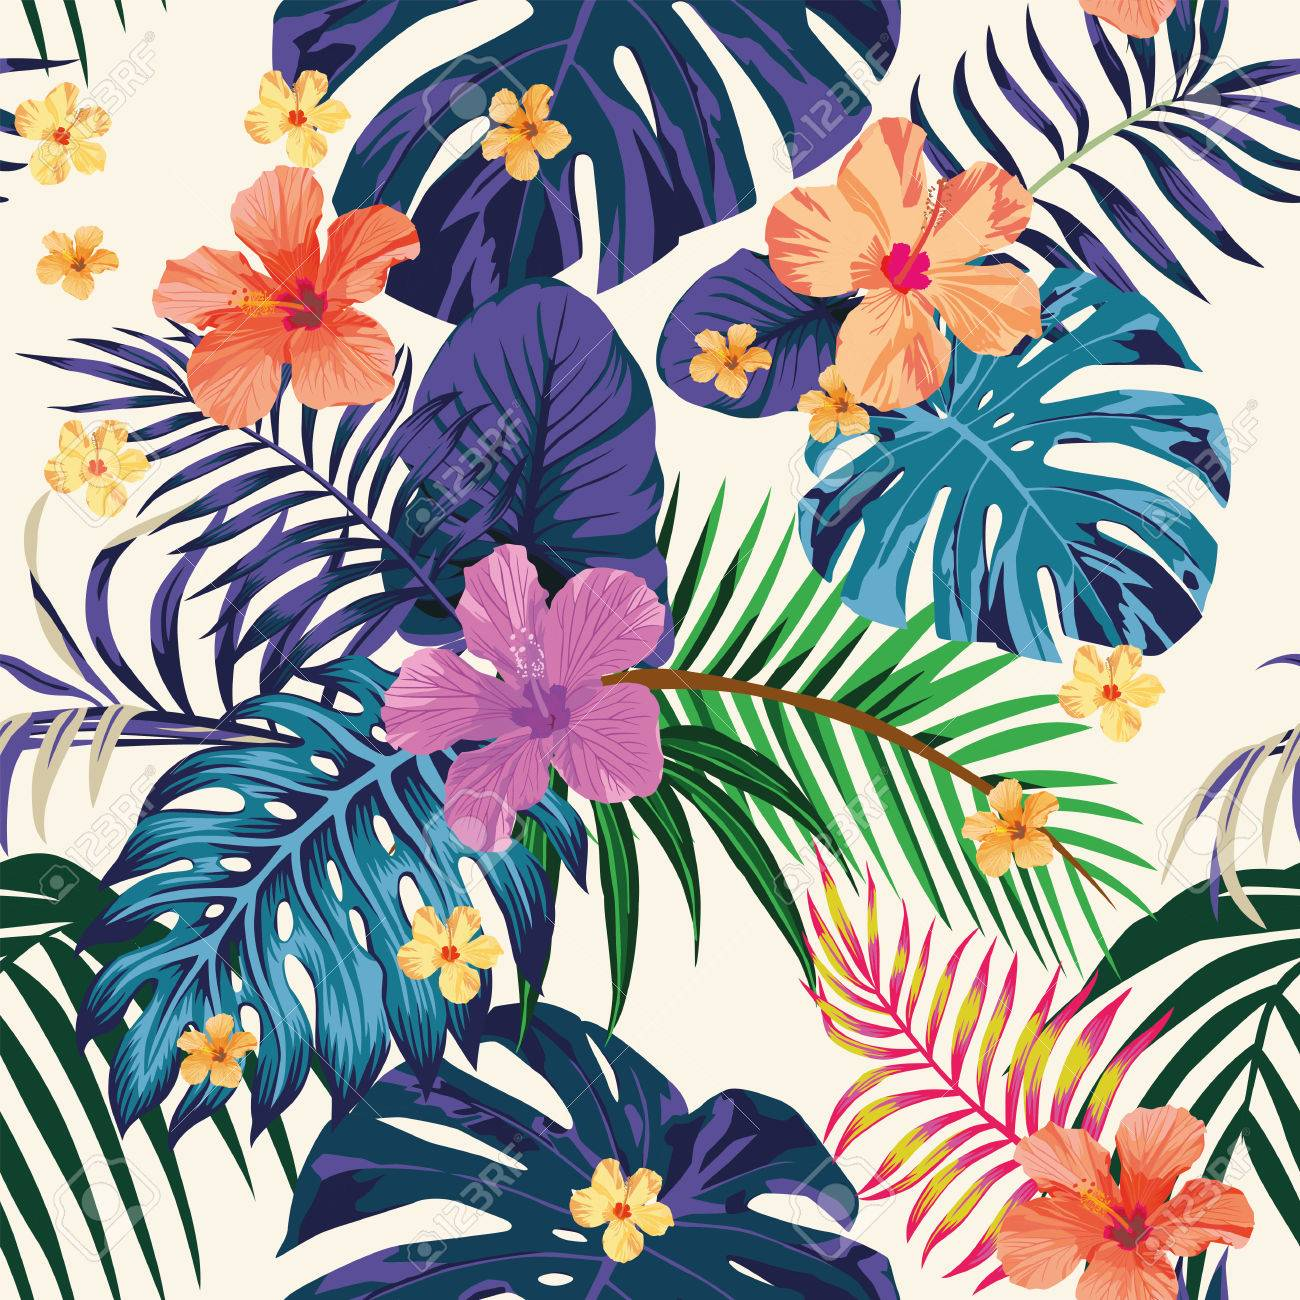 Tropical Abstract Color Print Flowers And Leaves Beach Wallpaper Jungle Exotic Background Stock Vector